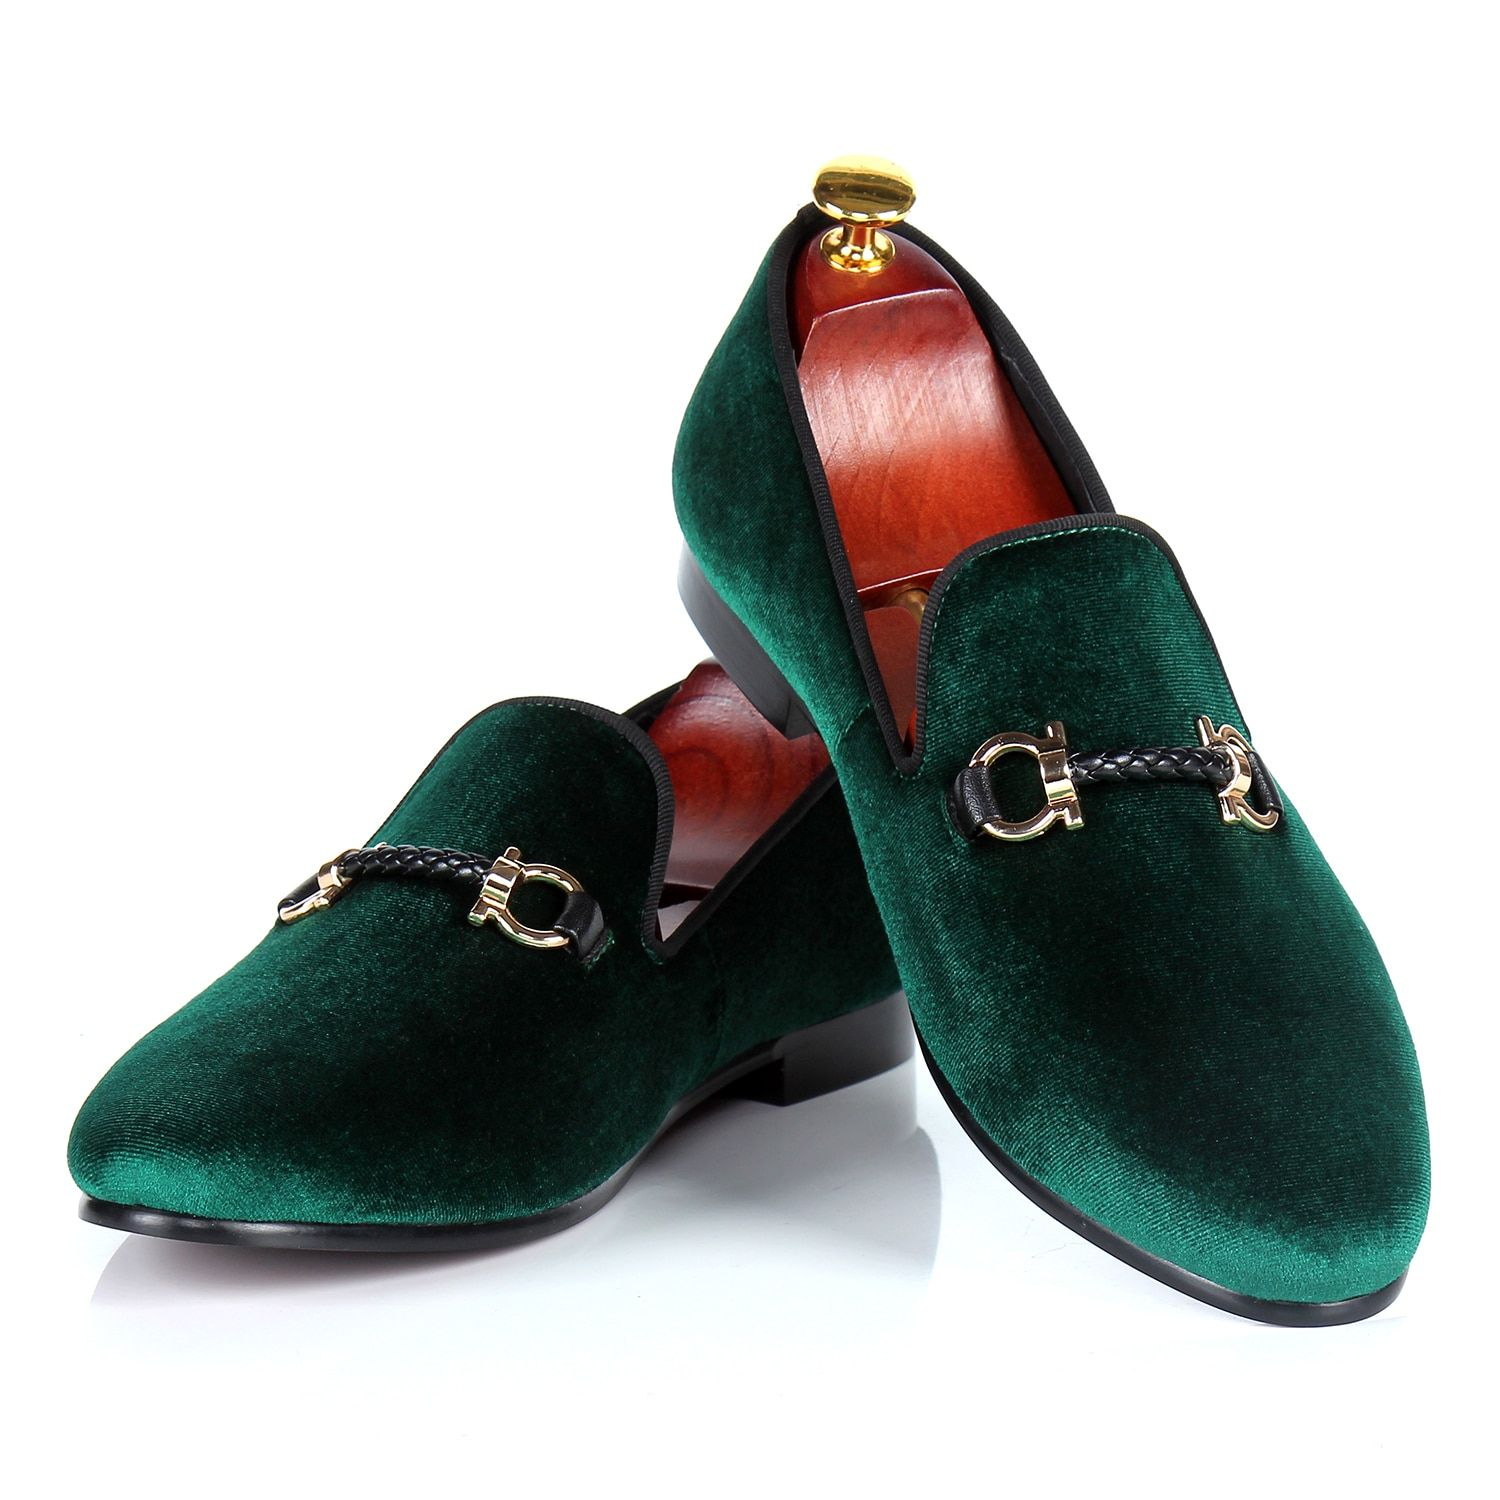 mens dress shoes green velvet loafers shoes wpven buckle strap wedding shoes custom free drop shipping size 7-14